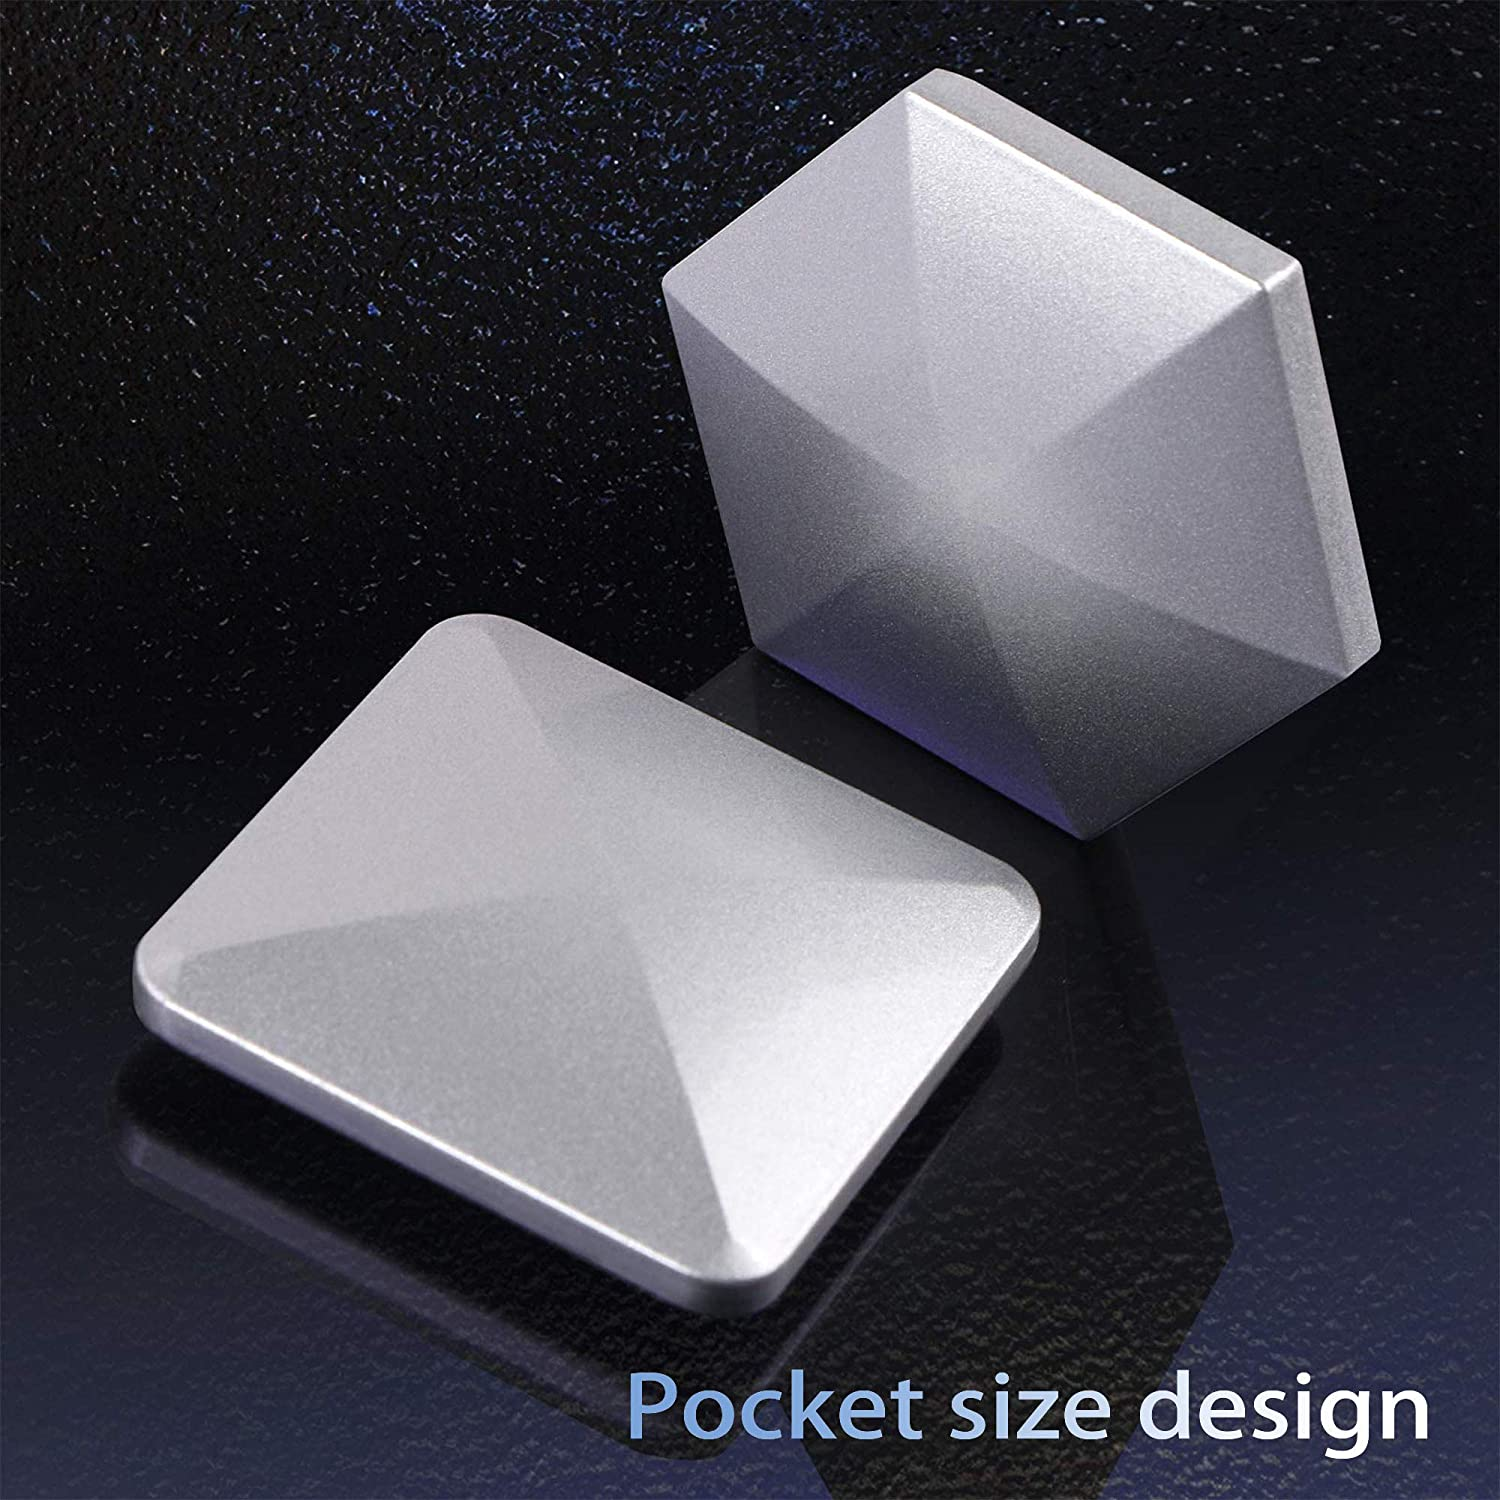 Gold Silver Office Rotary Decompression Toy 2 Pack Metal Decompressor Pocket Kinetic Energy Toys Flipo Flip Desk Toy Roronoa Zoro Desktop Flip Toy